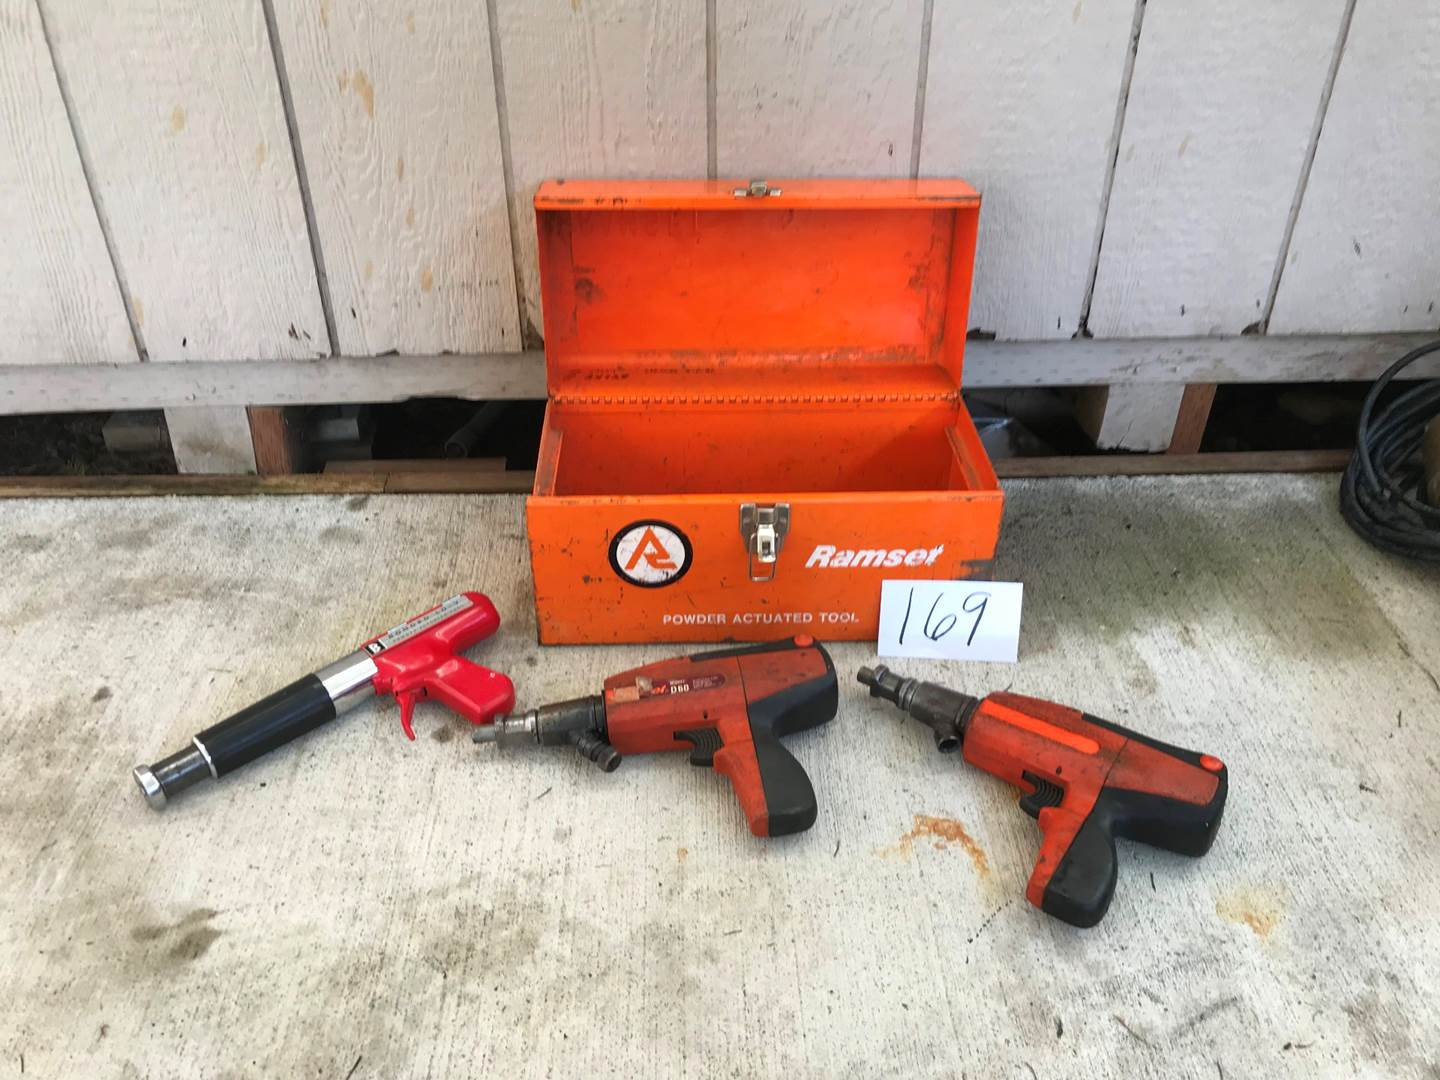 Lot # 169 - 2 Ramset Powder Actuated Tools # D60, Bonded Lo-V Powder Actuated Tool 2/ Metal Ramset Tool Box. (main image)